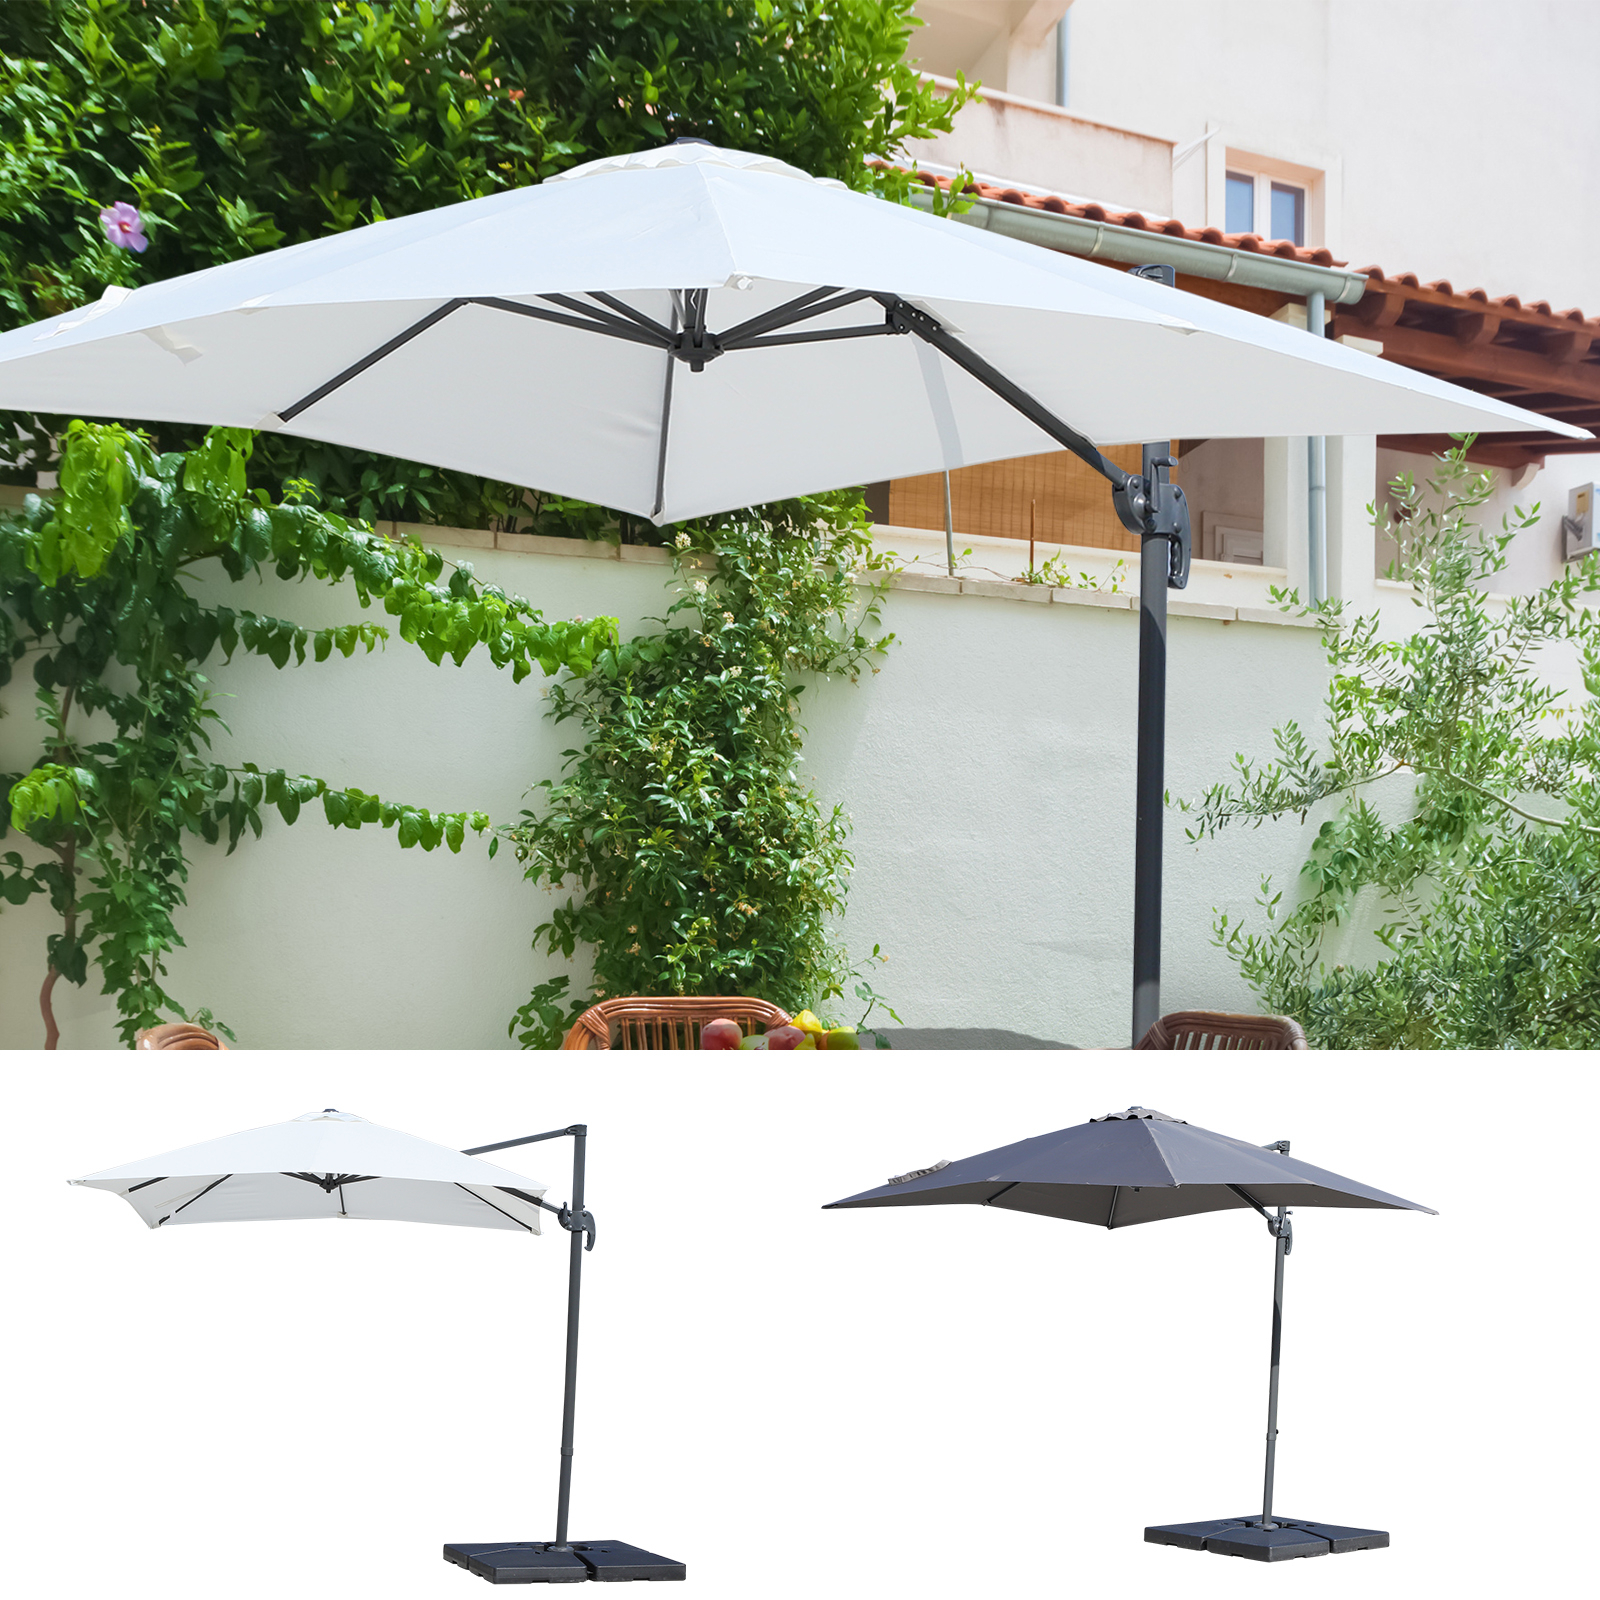 Details About 8'X8' Square Patio Offset Hanging Cantilever Umbrella 360°  Rotation W/ Cross In Widely Used Cantilever Umbrellas (View 7 of 20)